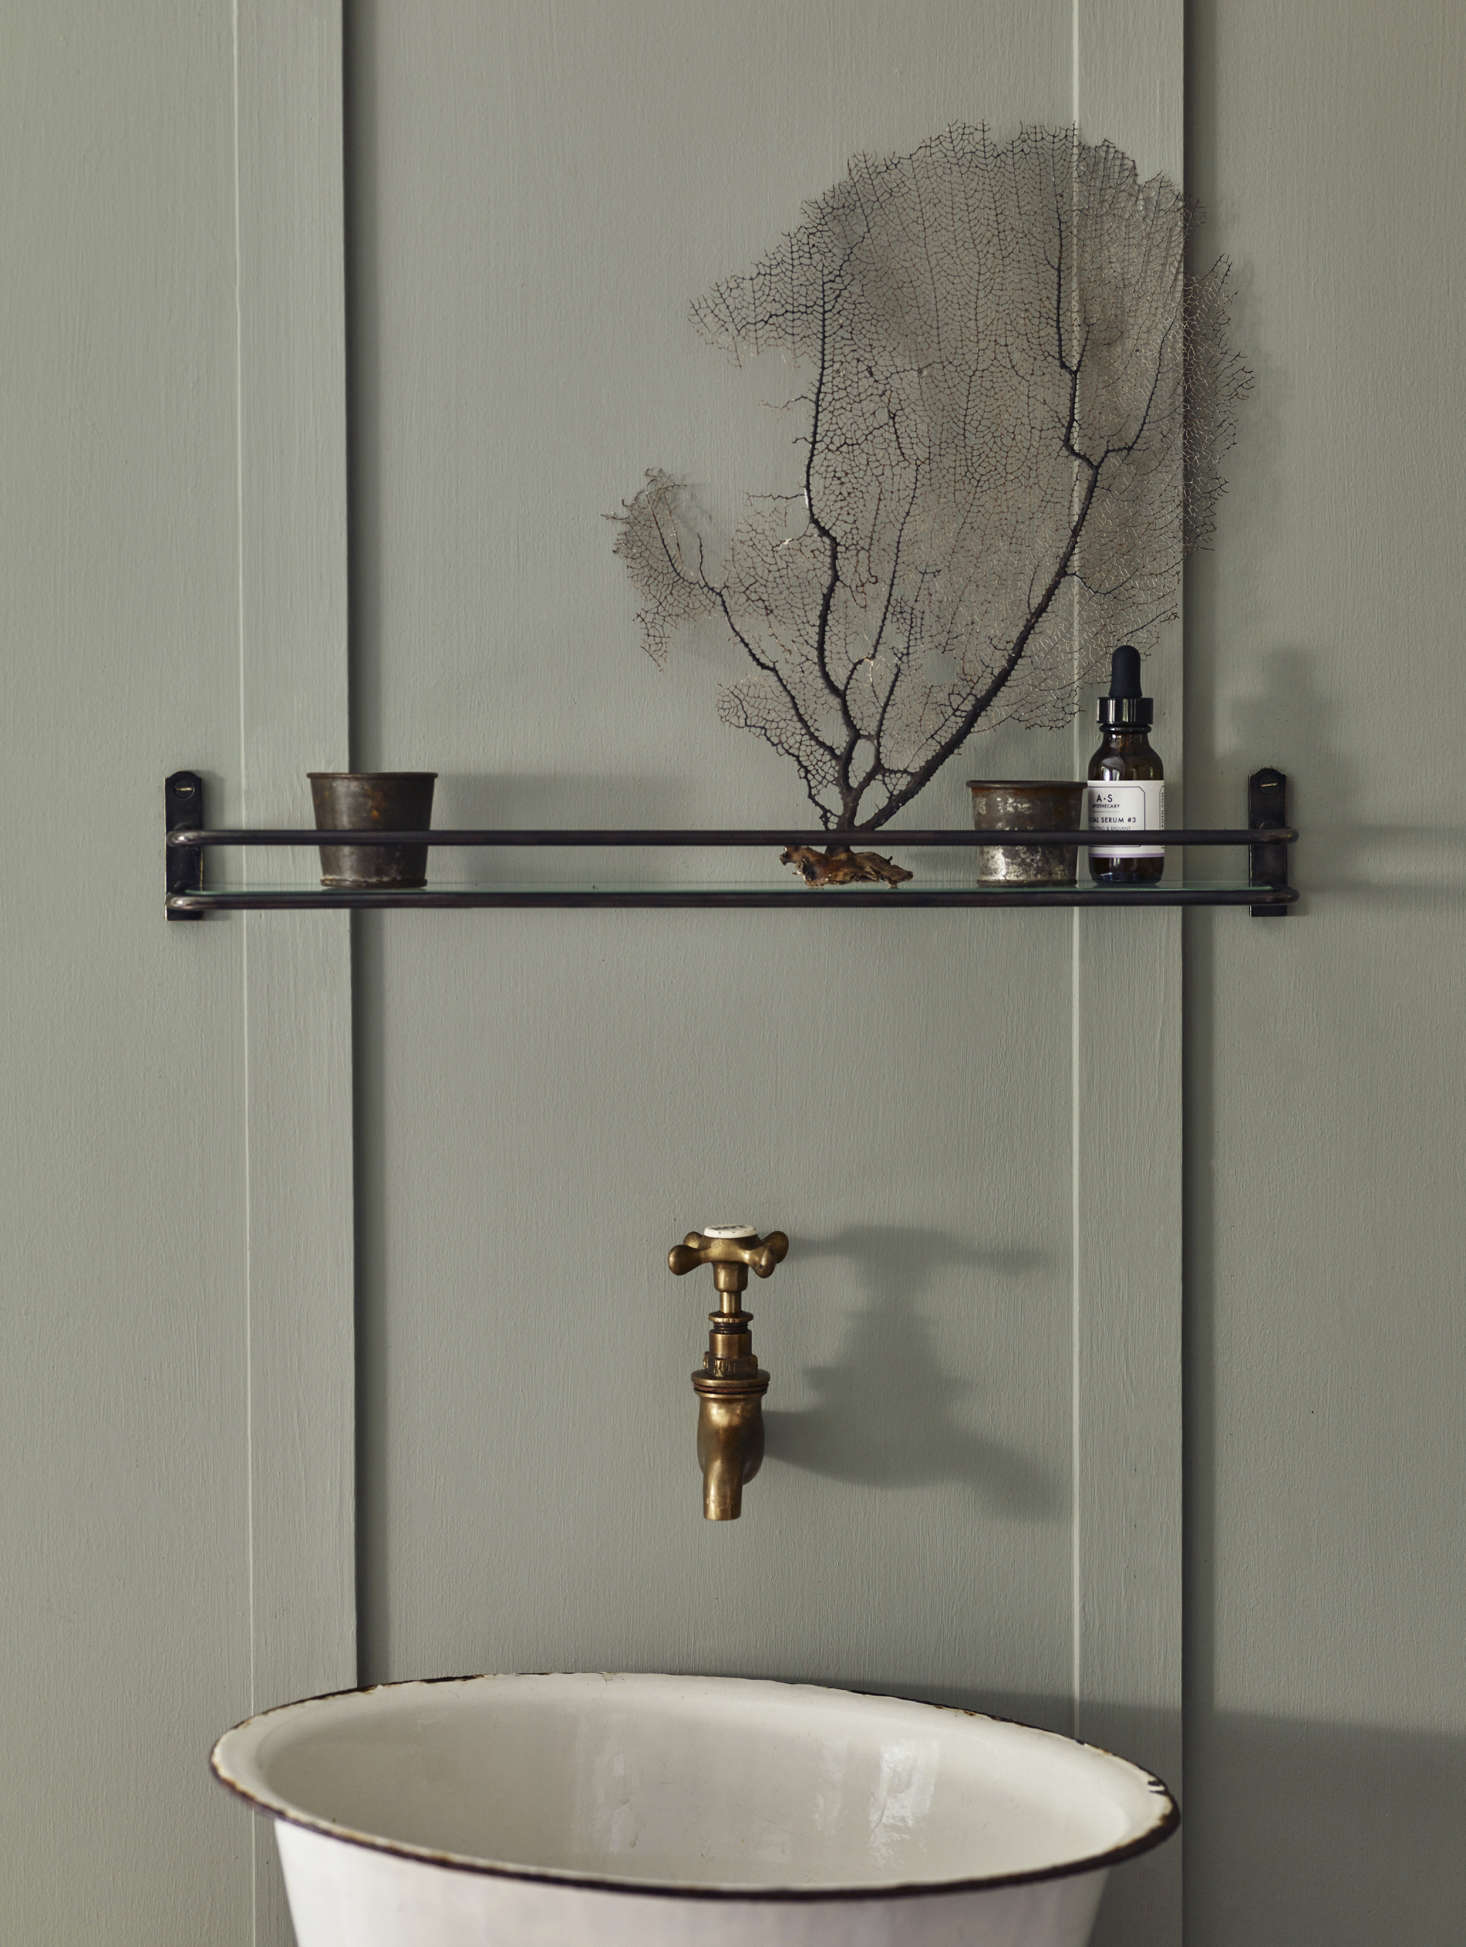 another bilton bathroom shelf this one in blackened bronze with a simple glass inset - Bathroom Accessories Display